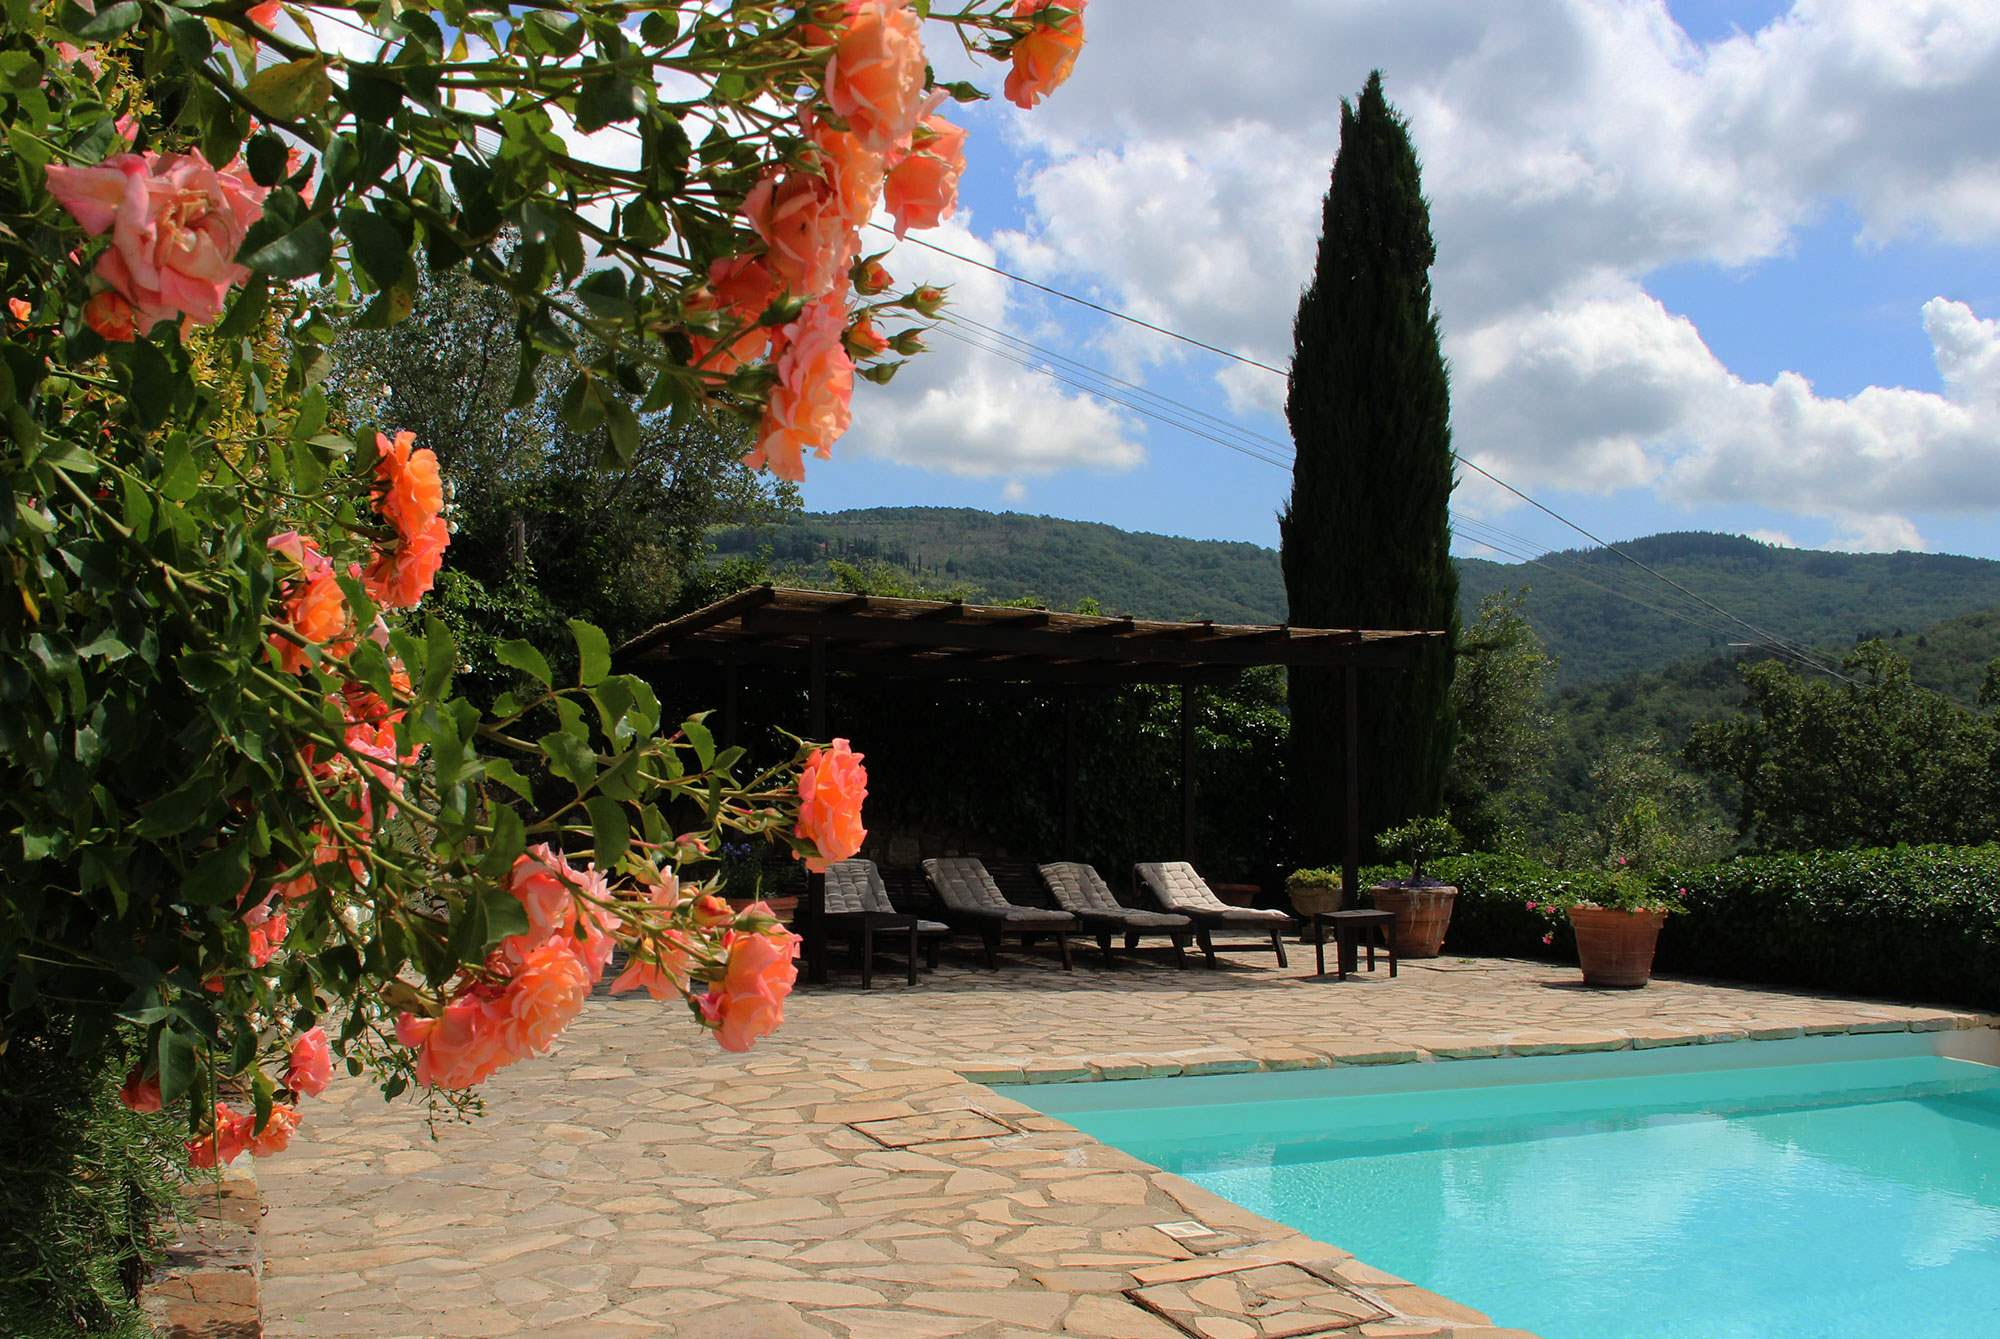 Villa Giacinto, 6 Bedroom rate, 6 bedroom villa in Chianti & Countryside, Tuscany Photo #11